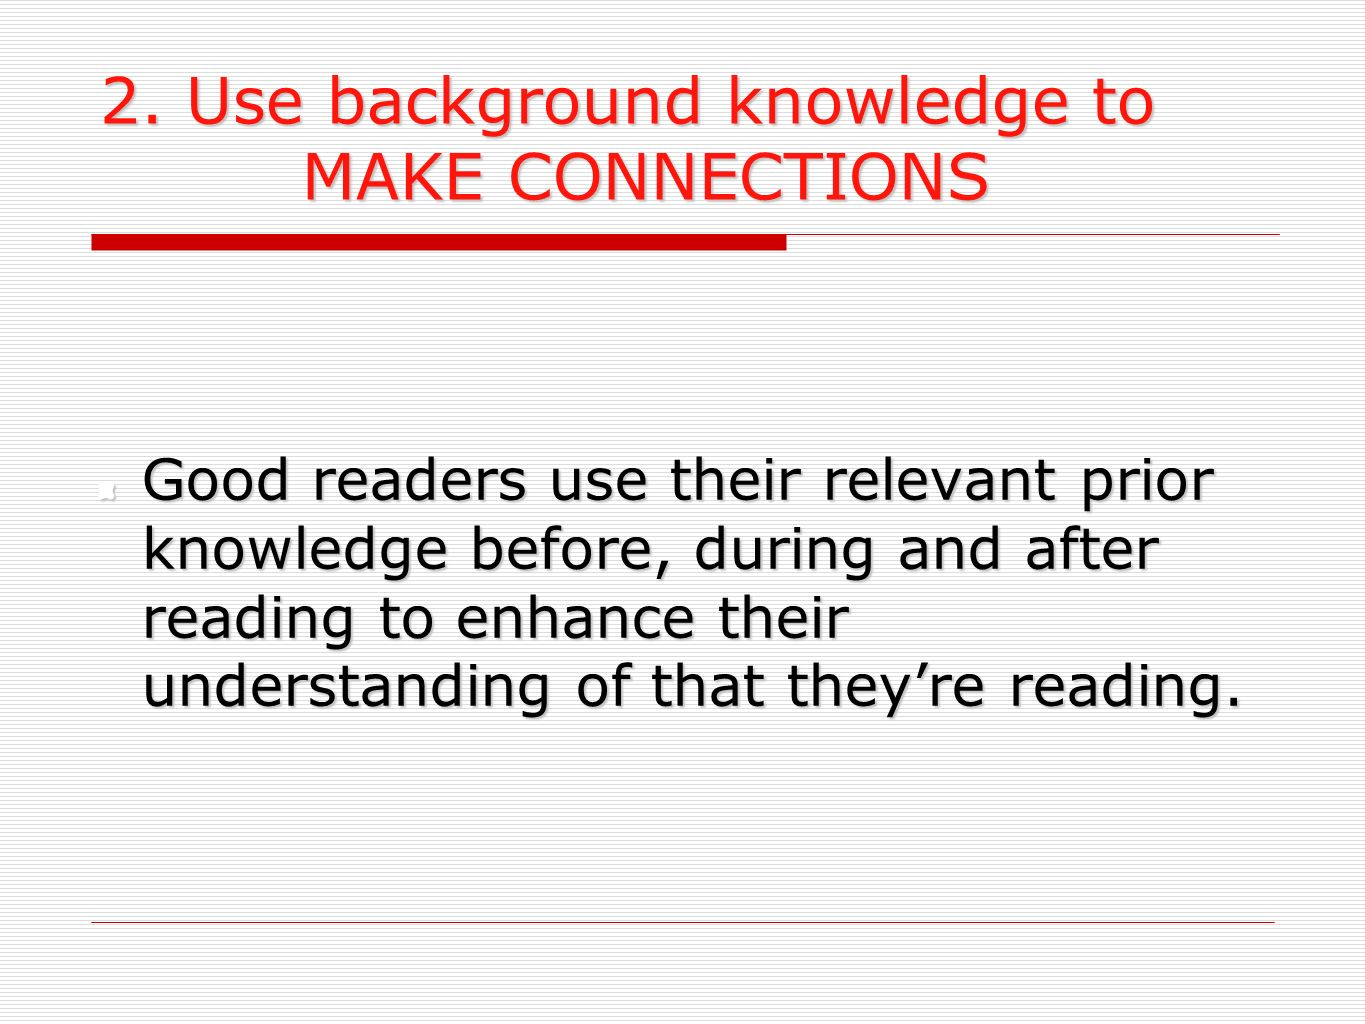 2. Use background knowledge to MAKE CONNECTIONS